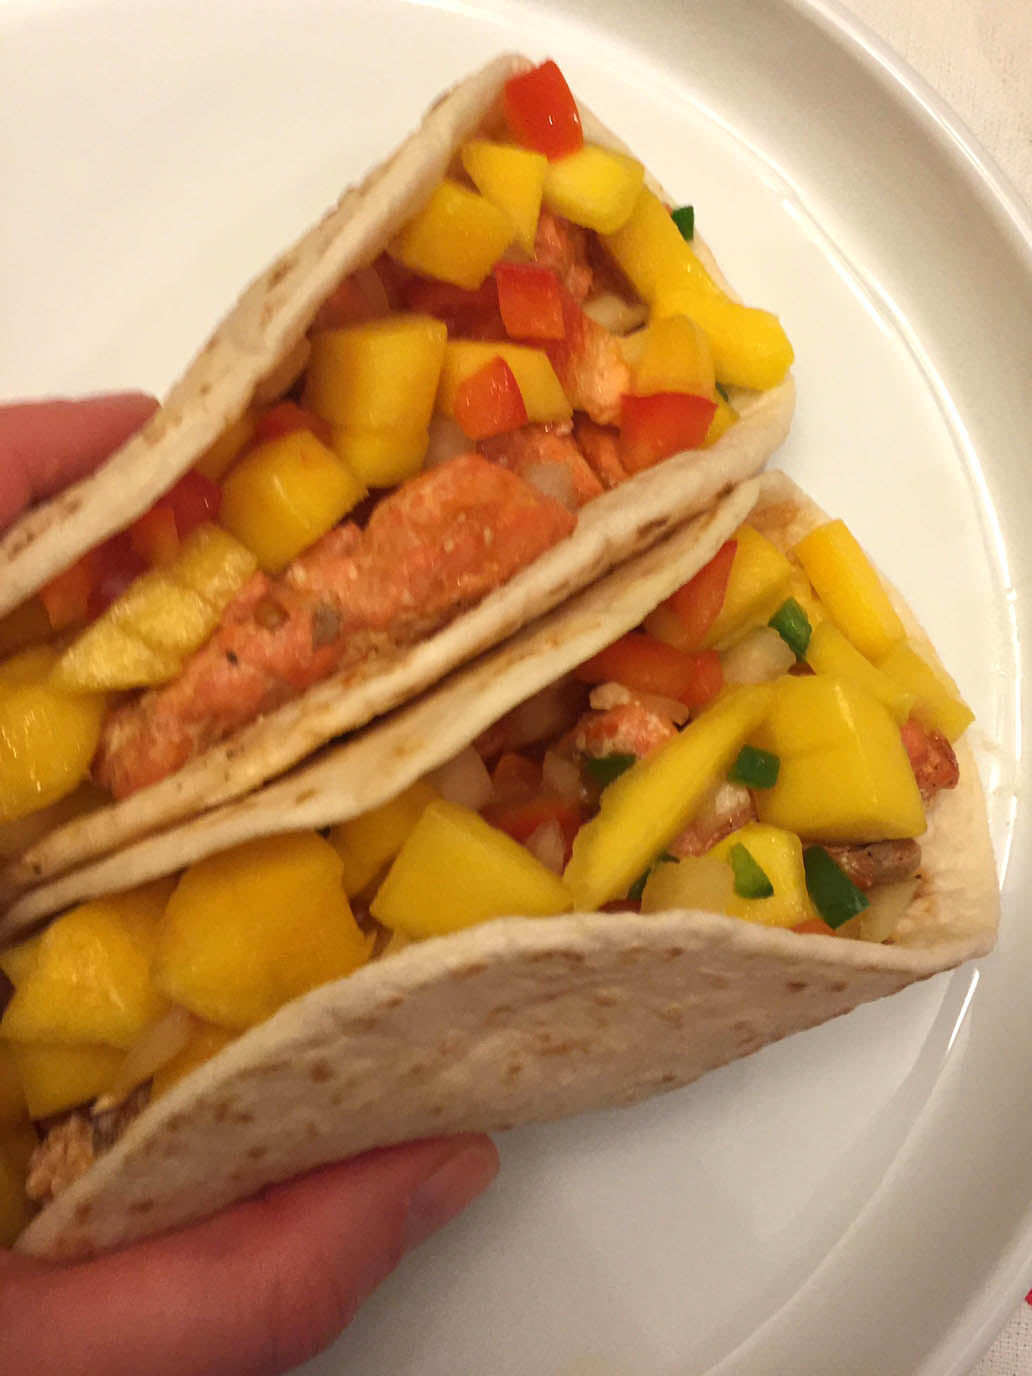 Amazing Fish Tacos Recipe With Mango Salsa!